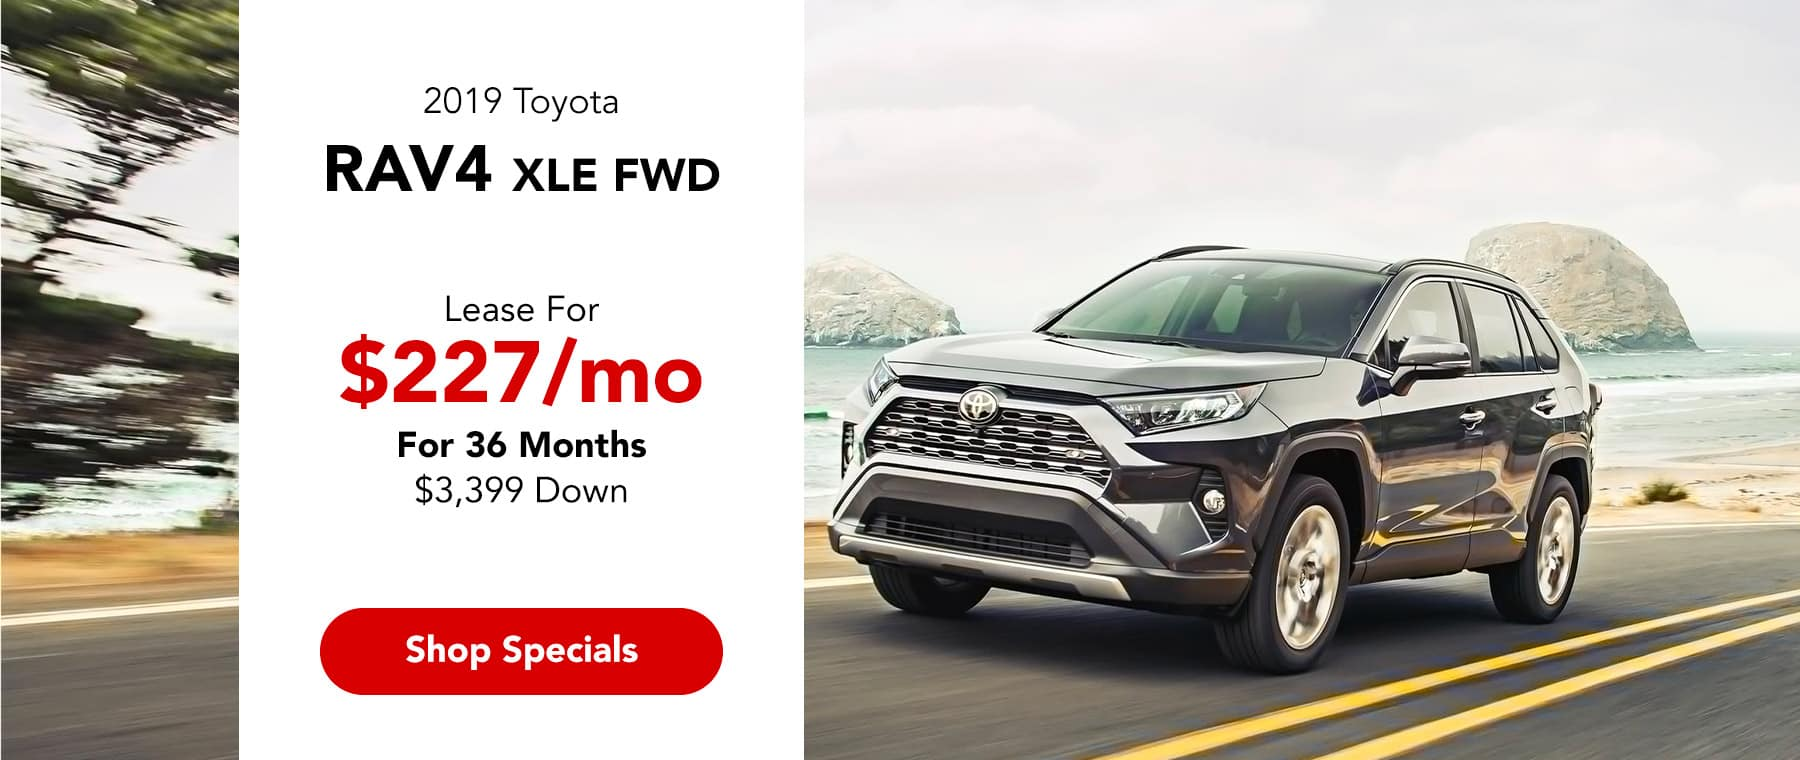 Toyota Dealership Fort Lauderdale >> Performance Toyota Omaha 2020 Best Car Reviews